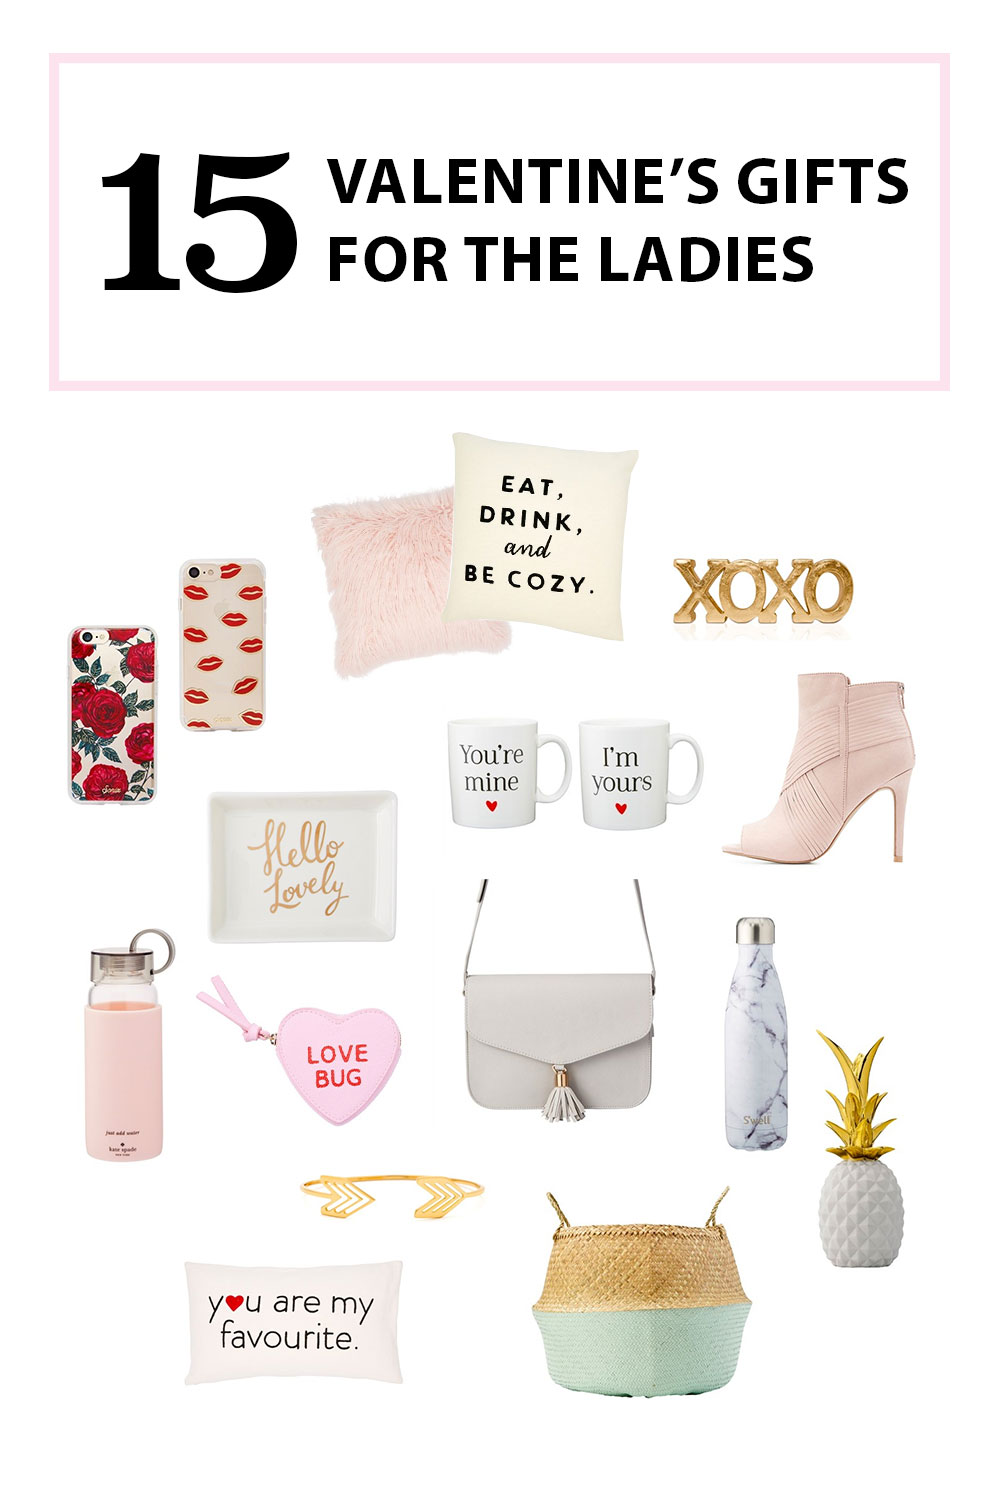 Valentines Day Gift Ideas | Pillows Shoes Baskets Home Decor Ideas | White, Blush Pink and Gold